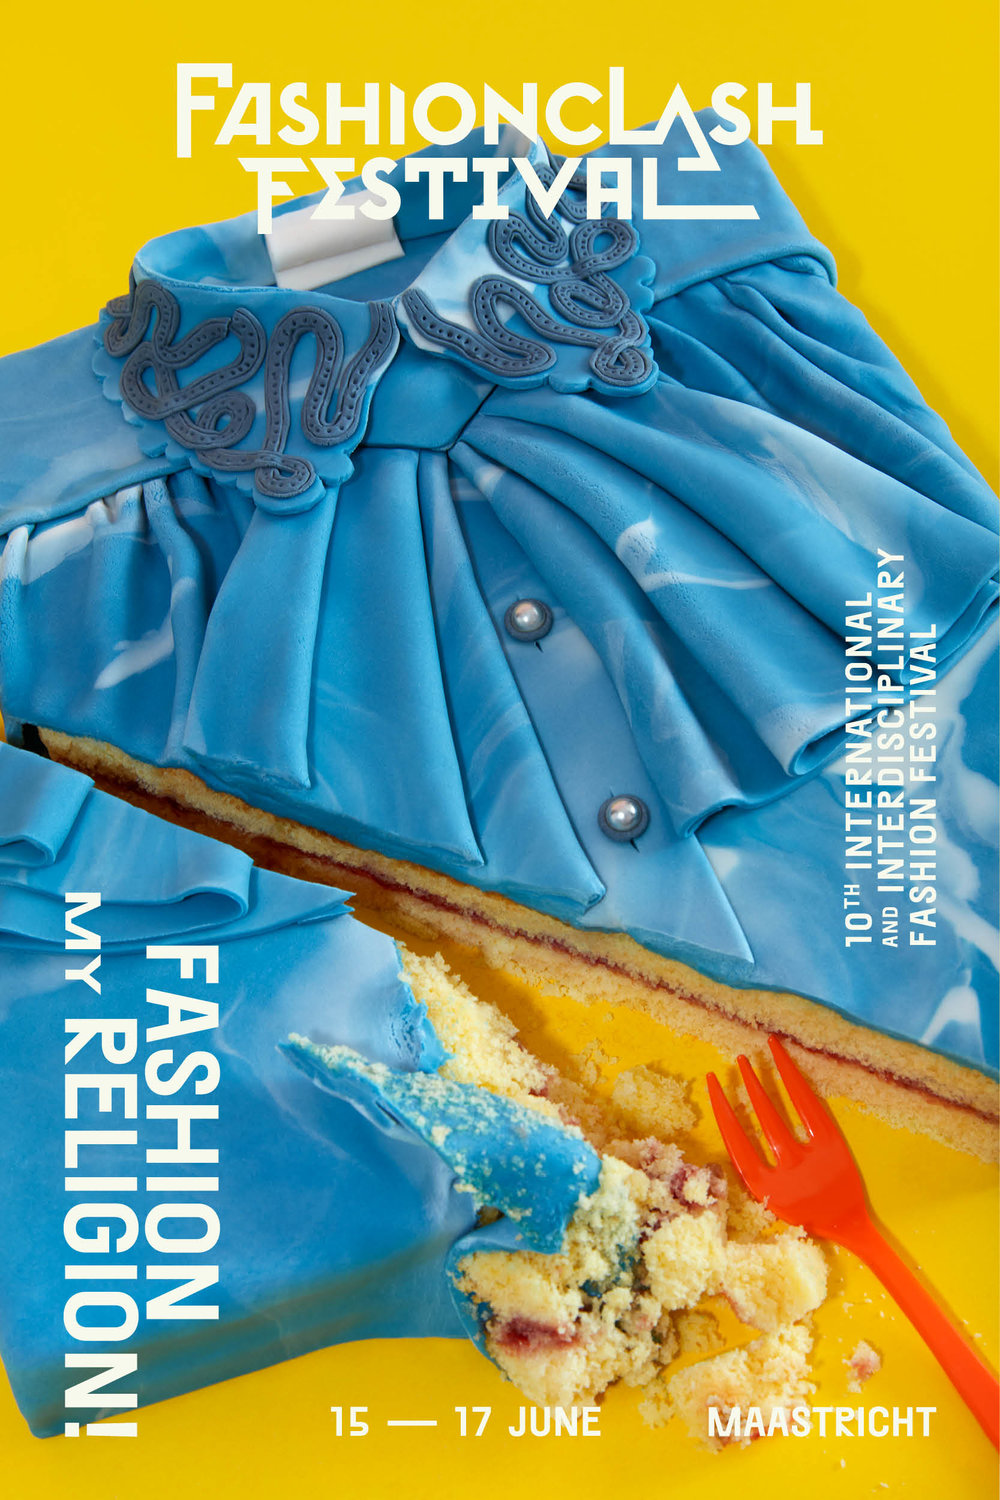 Campagne: FASHIONCLASH in collaboration with Fashion Collective Das Leben am Haverkamp. Photo: Lonneke van der Palen | Graphic Design: Studio Noto. Cakes based on favorite garments (among others of FASHIONCLASH Founders Nawie Kuiper, Branko Popovic and Laurens Hamacher)